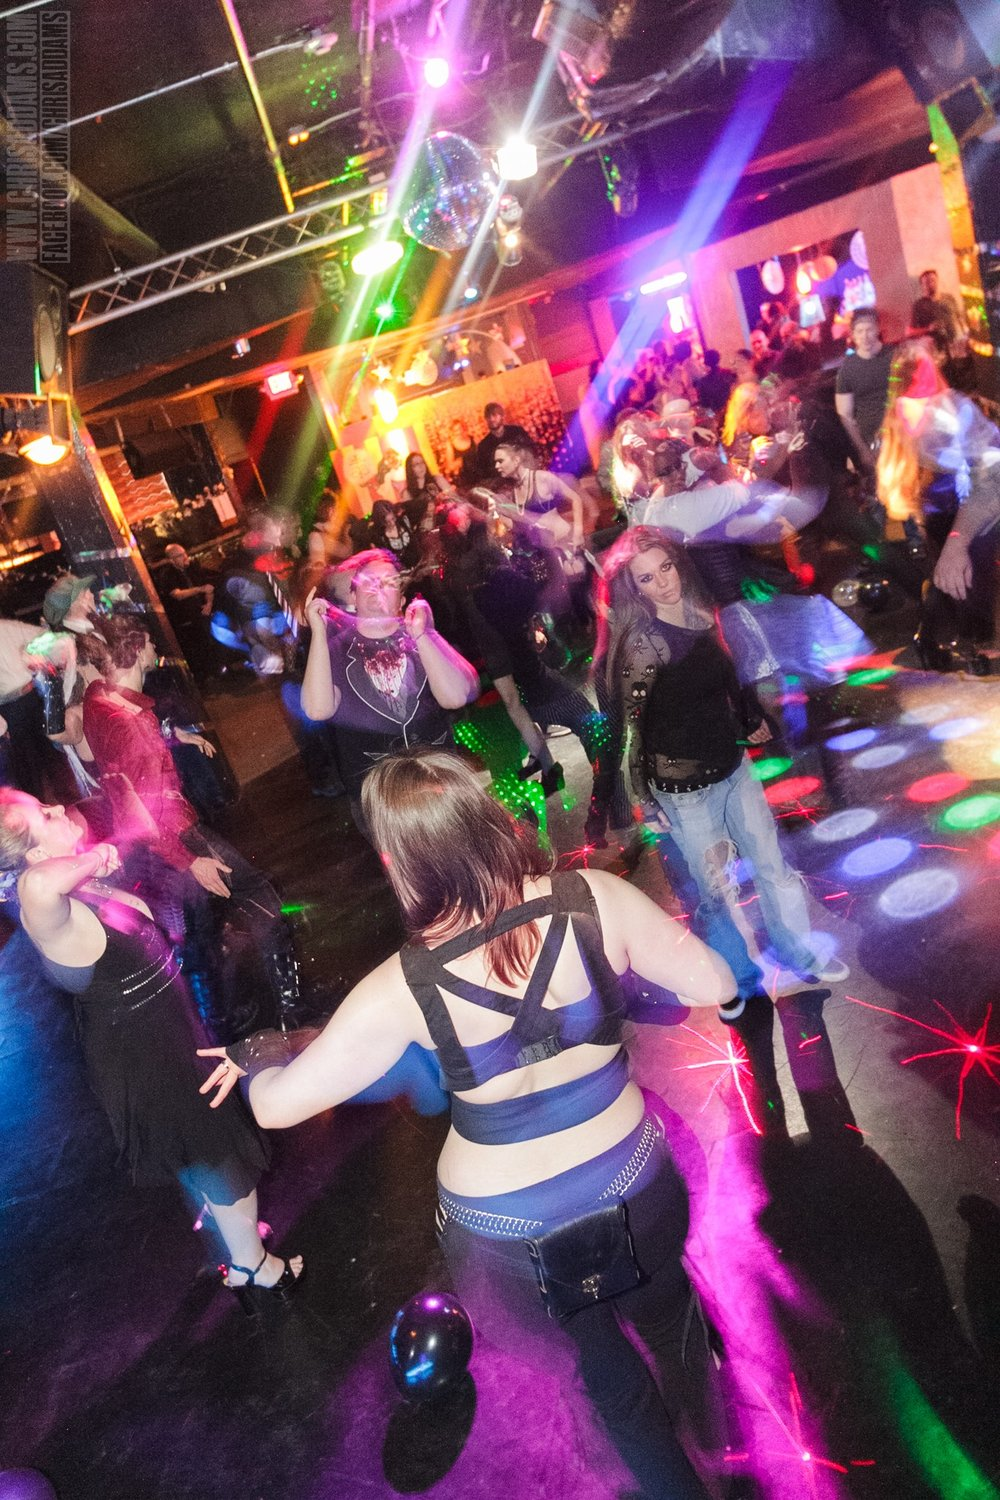 TheHavenClub-Goth-Industrial-Dance-Alternative-Northampton-MA (30).jpg